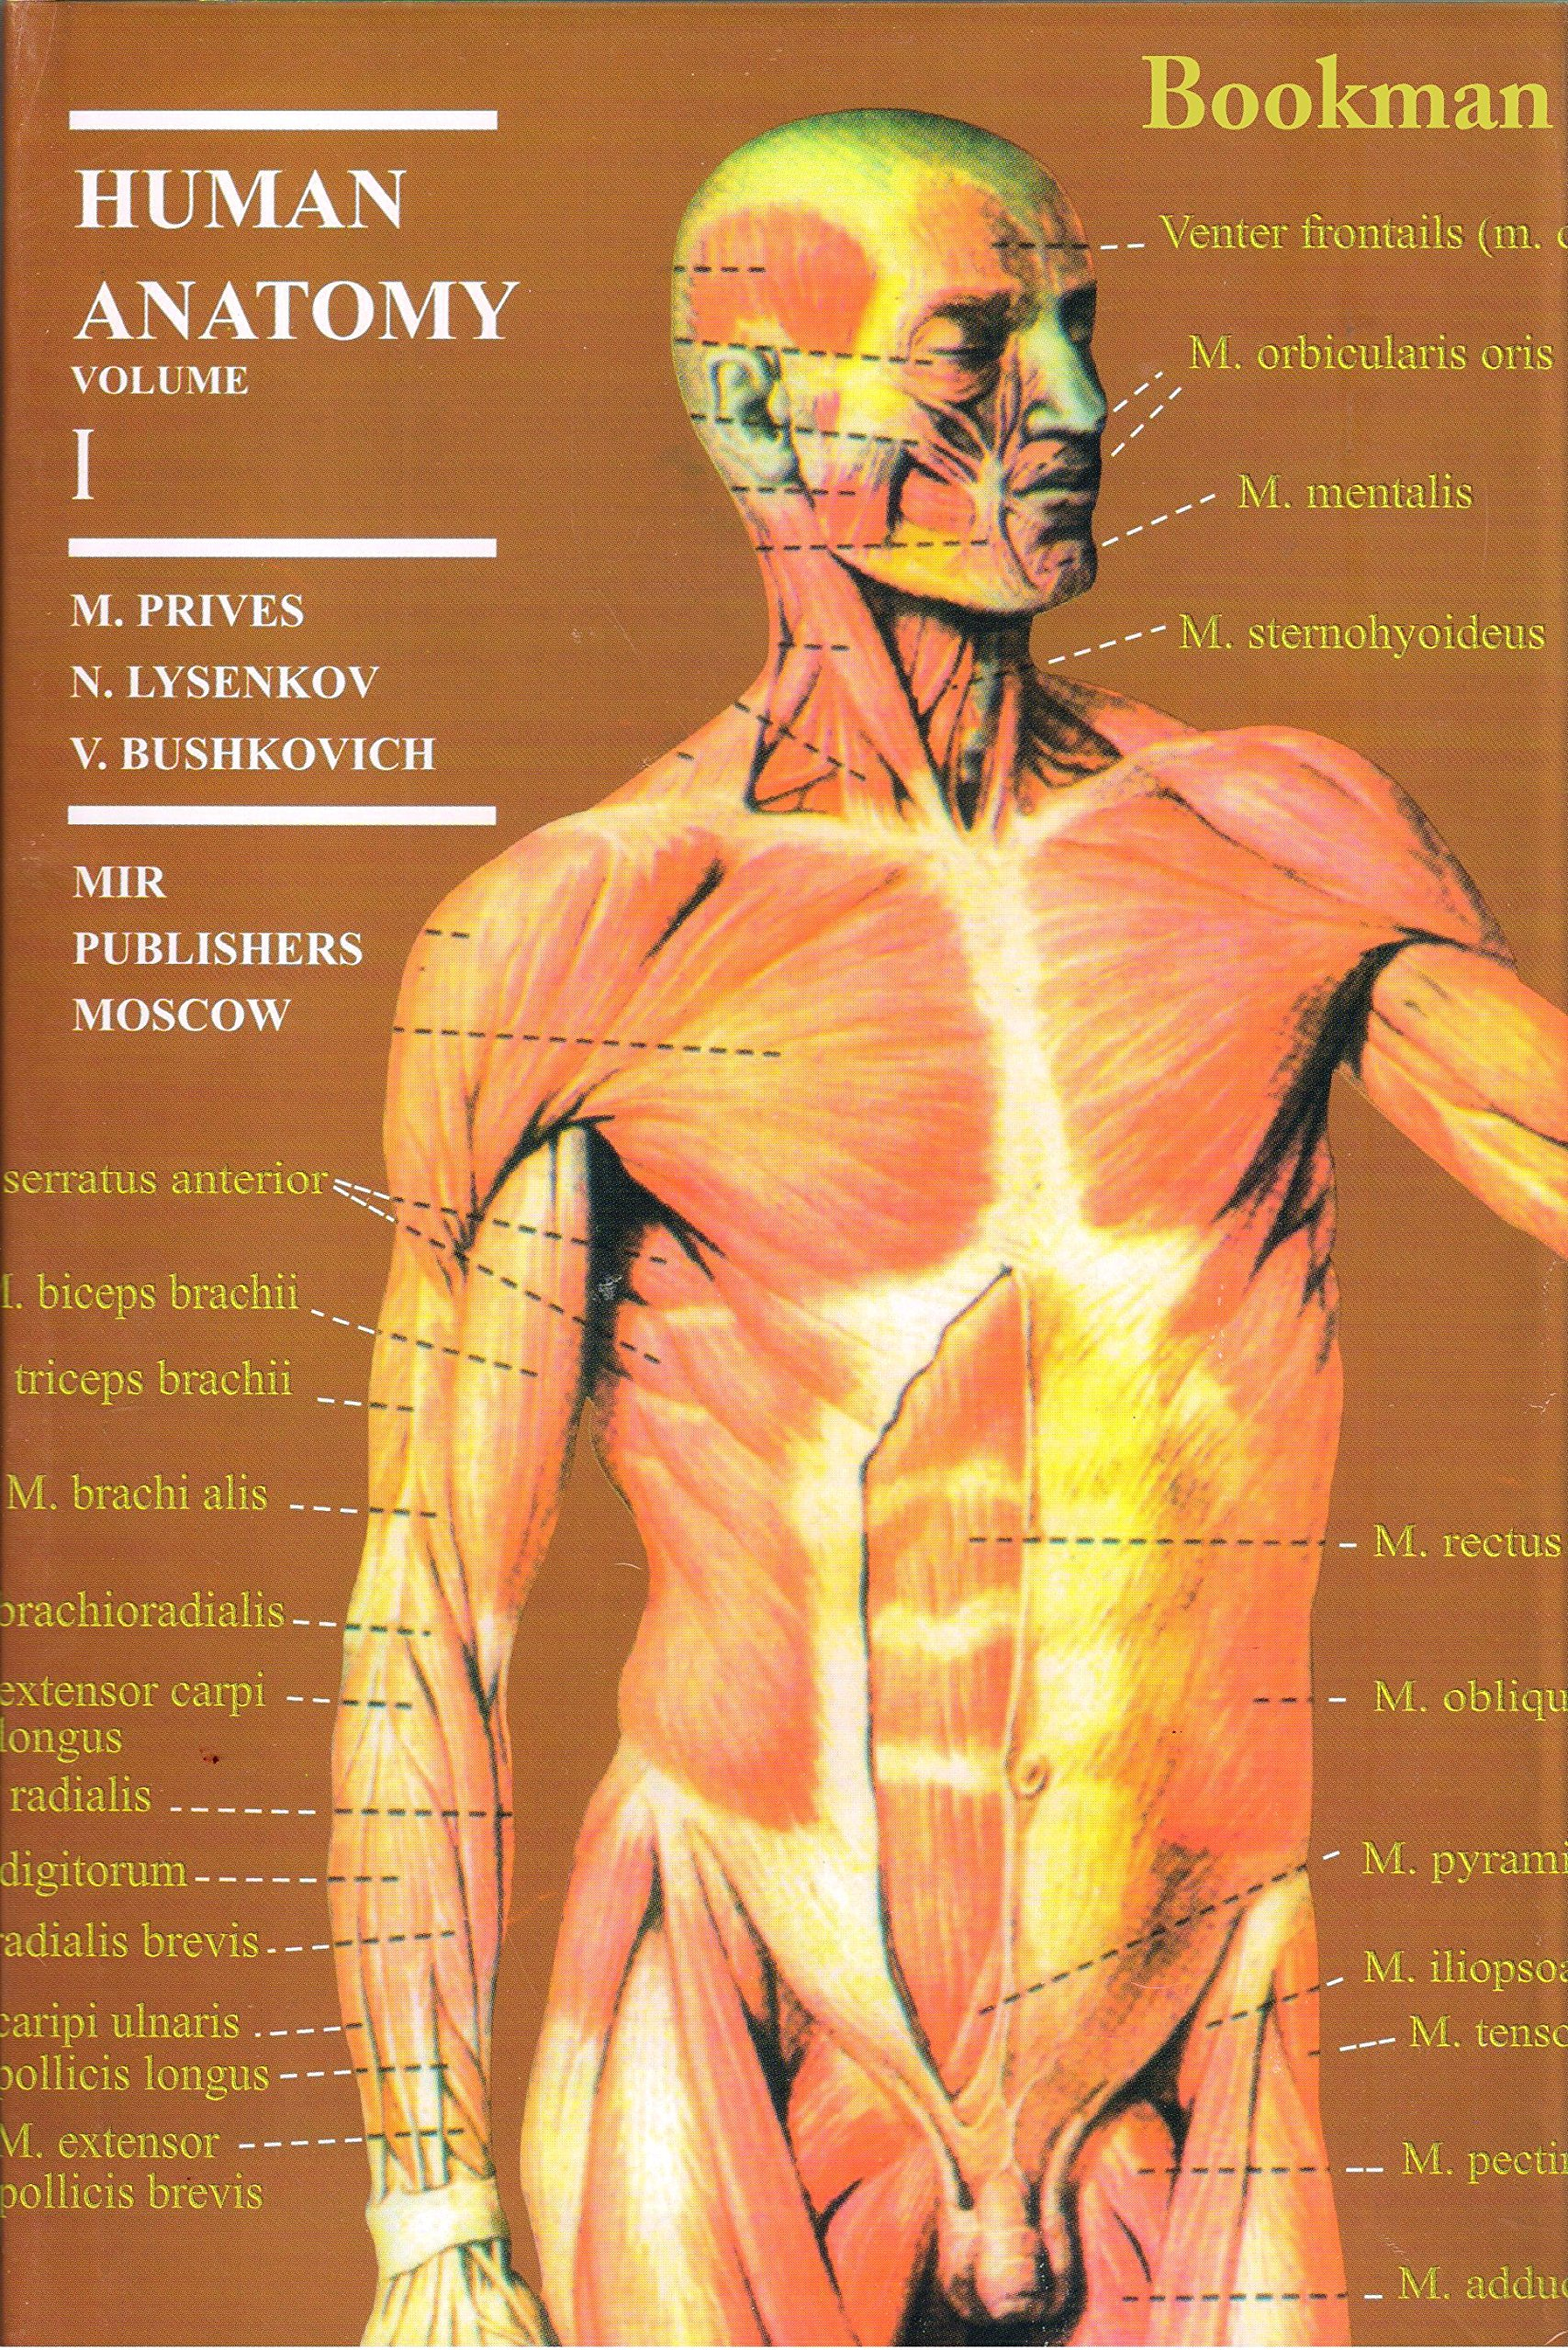 buy human anatomy 2 volume set book online at low prices in india